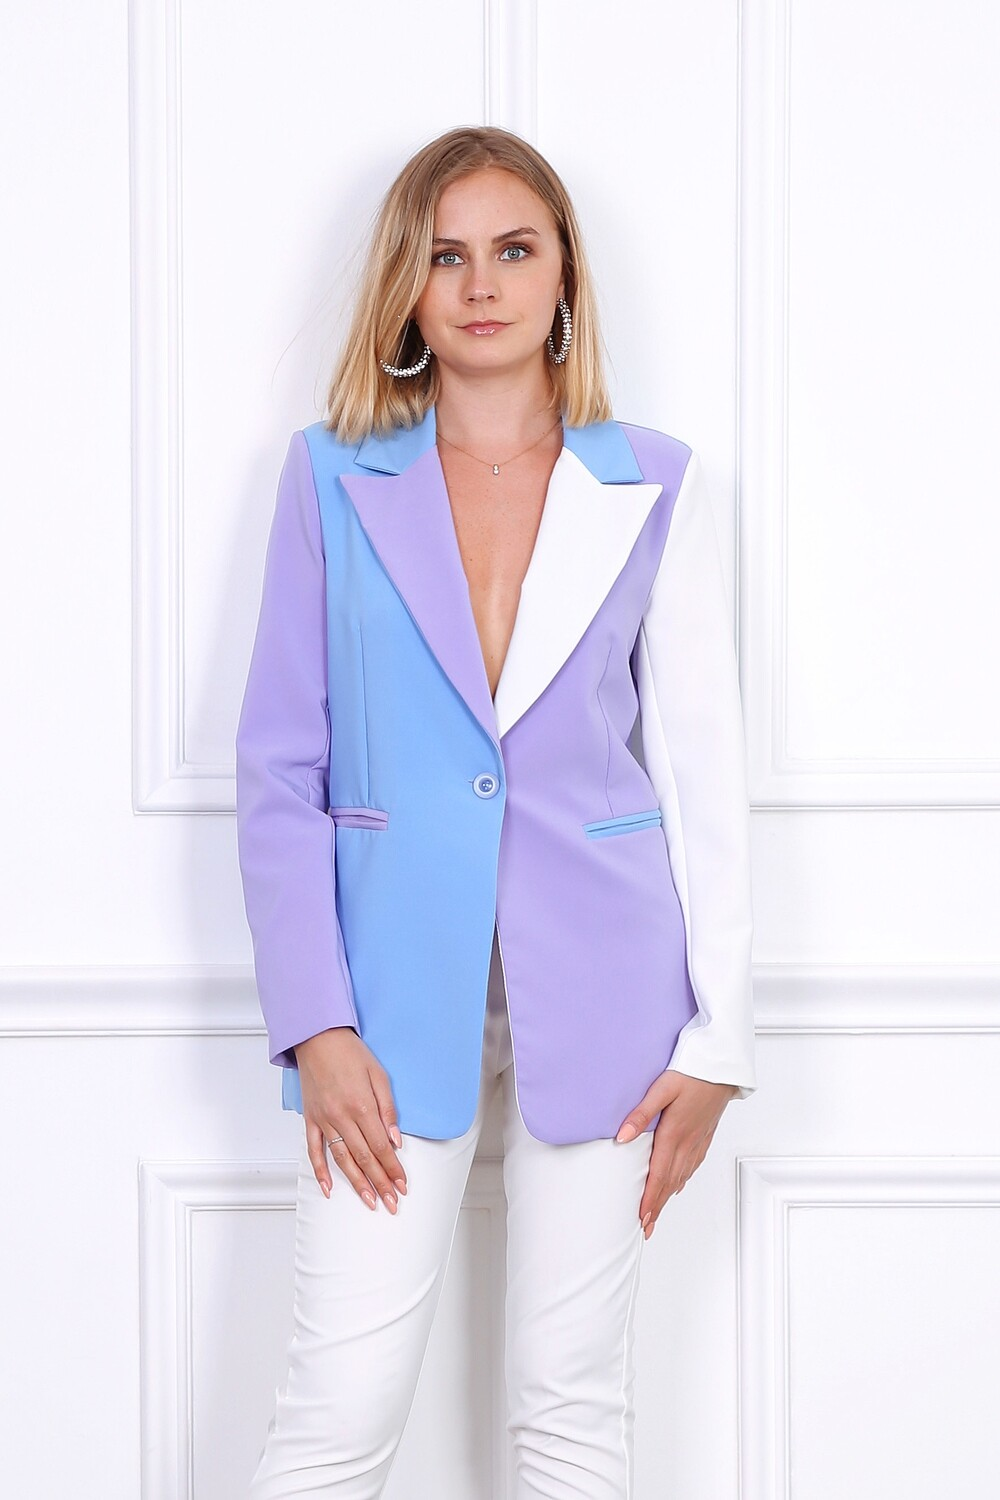 'Wisteria' Blazer in Colour Combination; Lilac, Blue & White